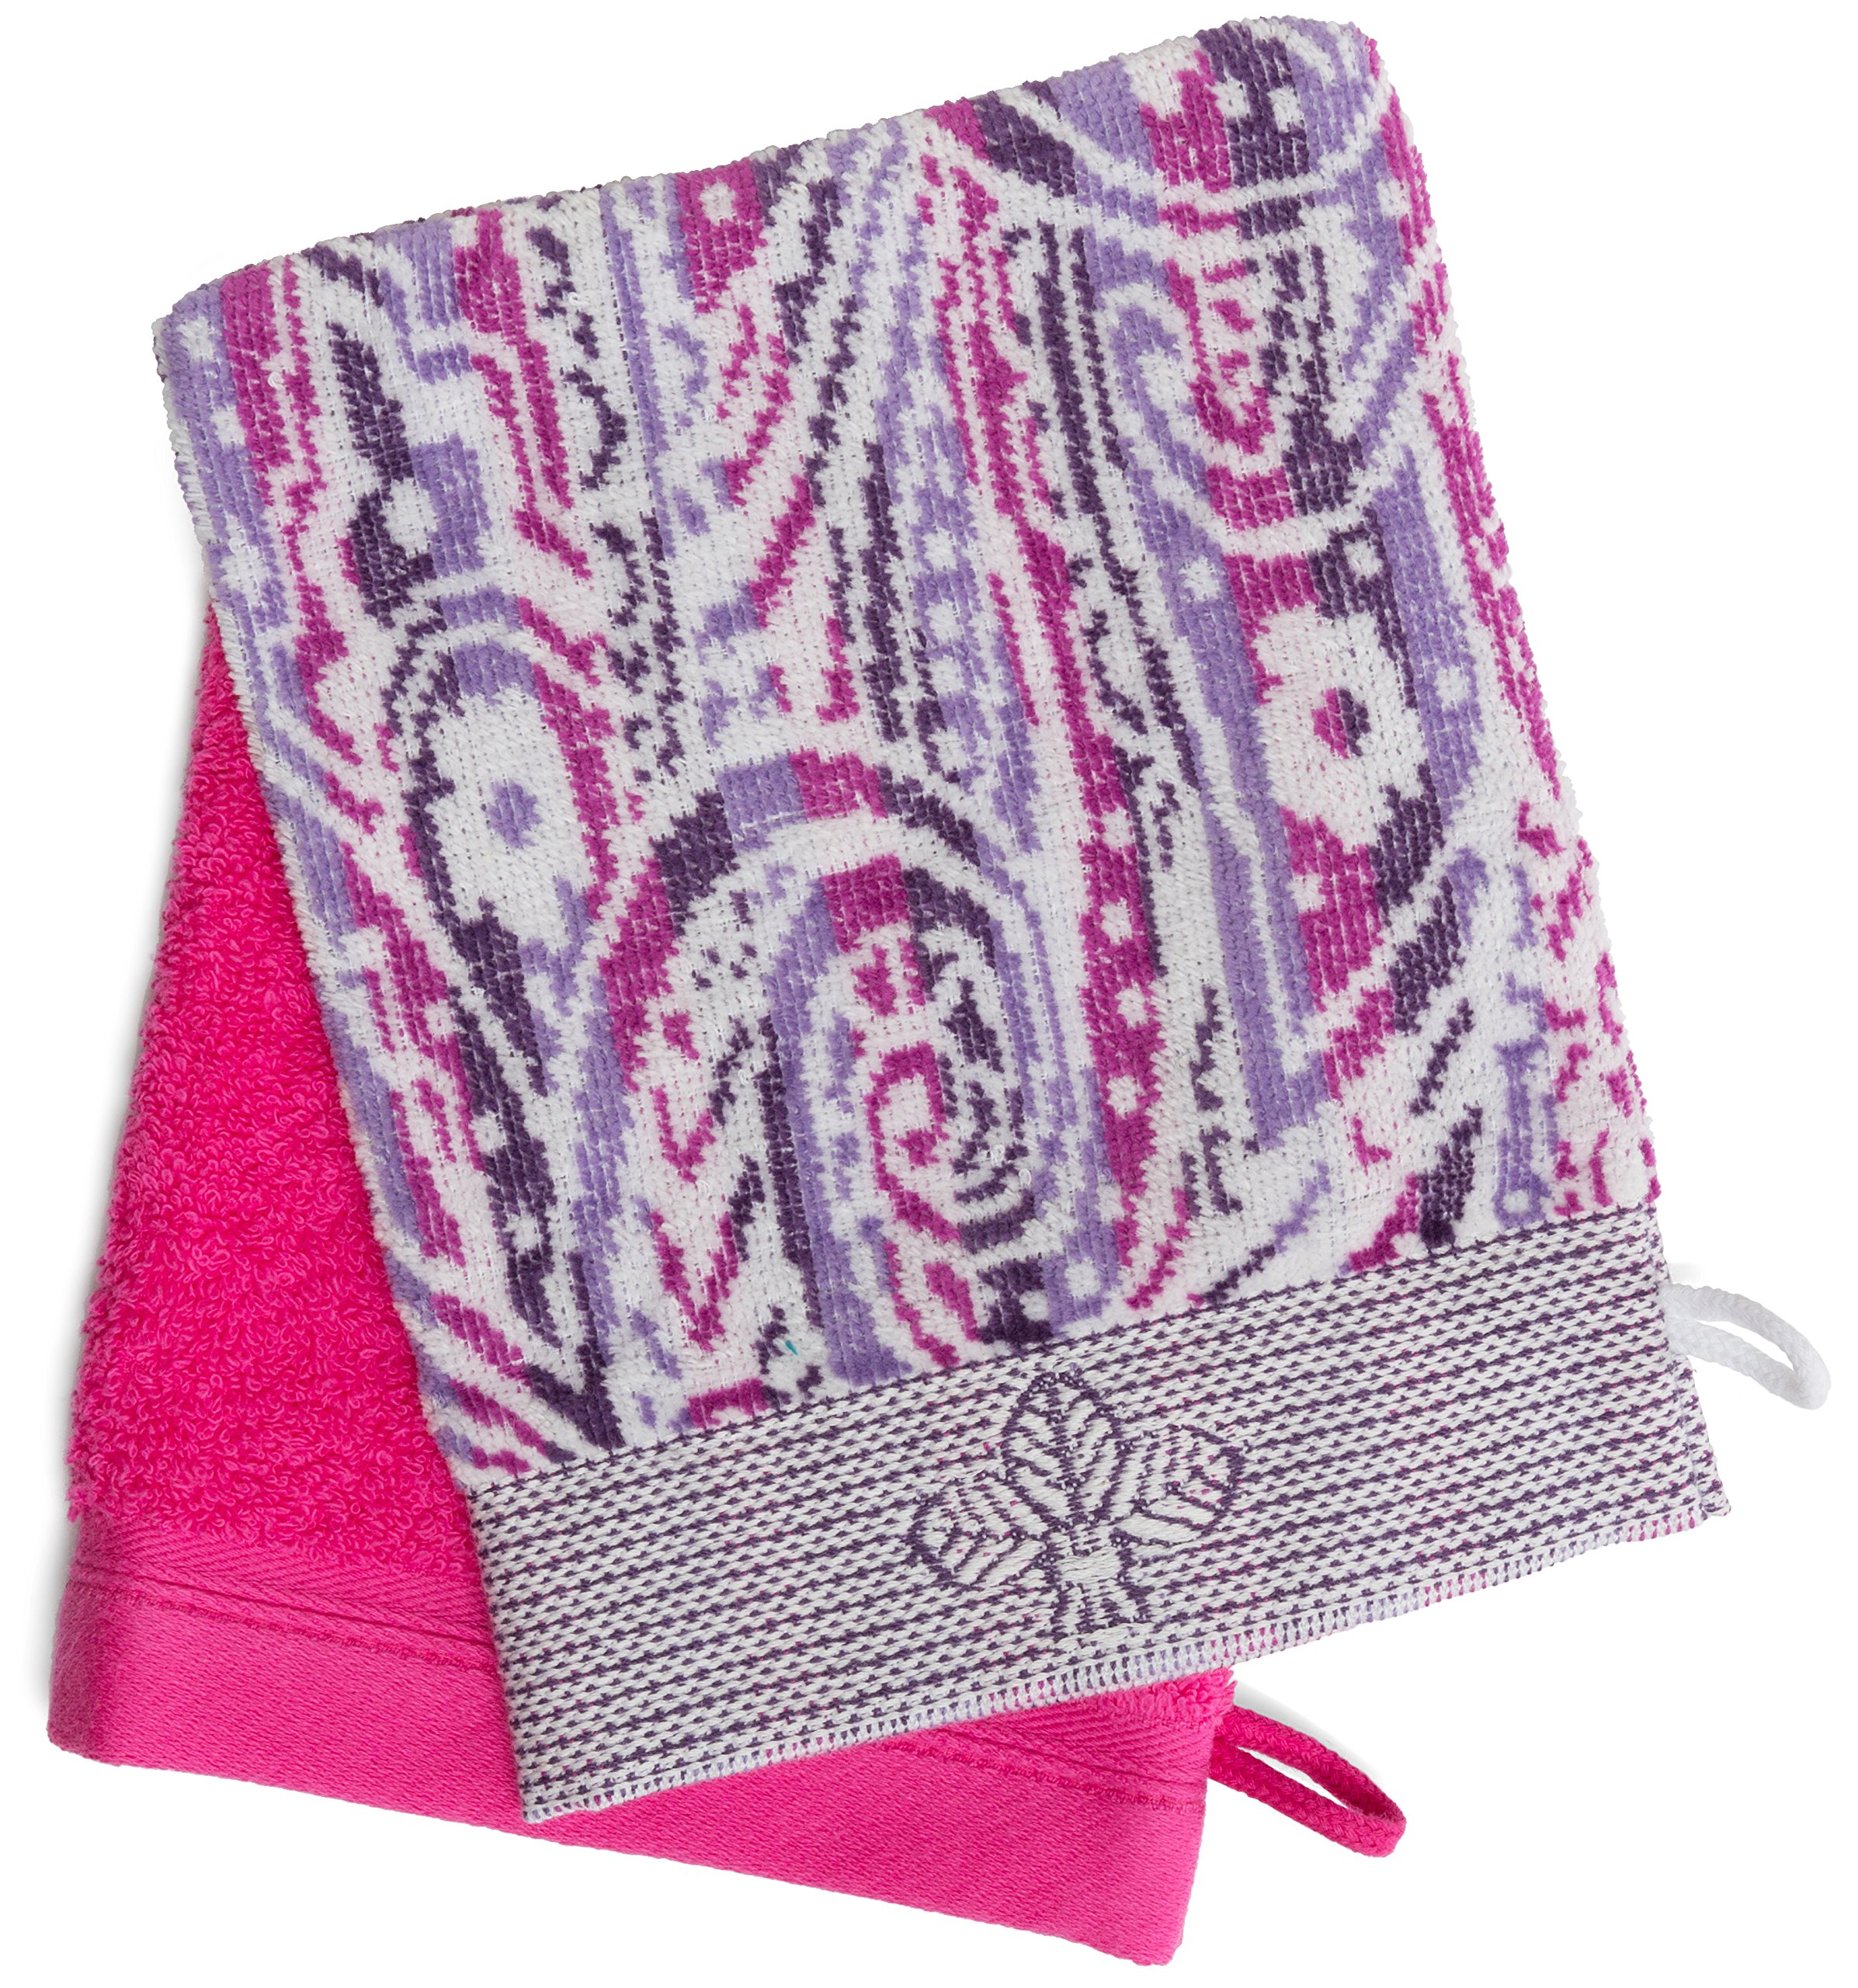 France Luxe Body French-Style Bath Mitt 2-Pack - Fleur Lilac Multi/Pink